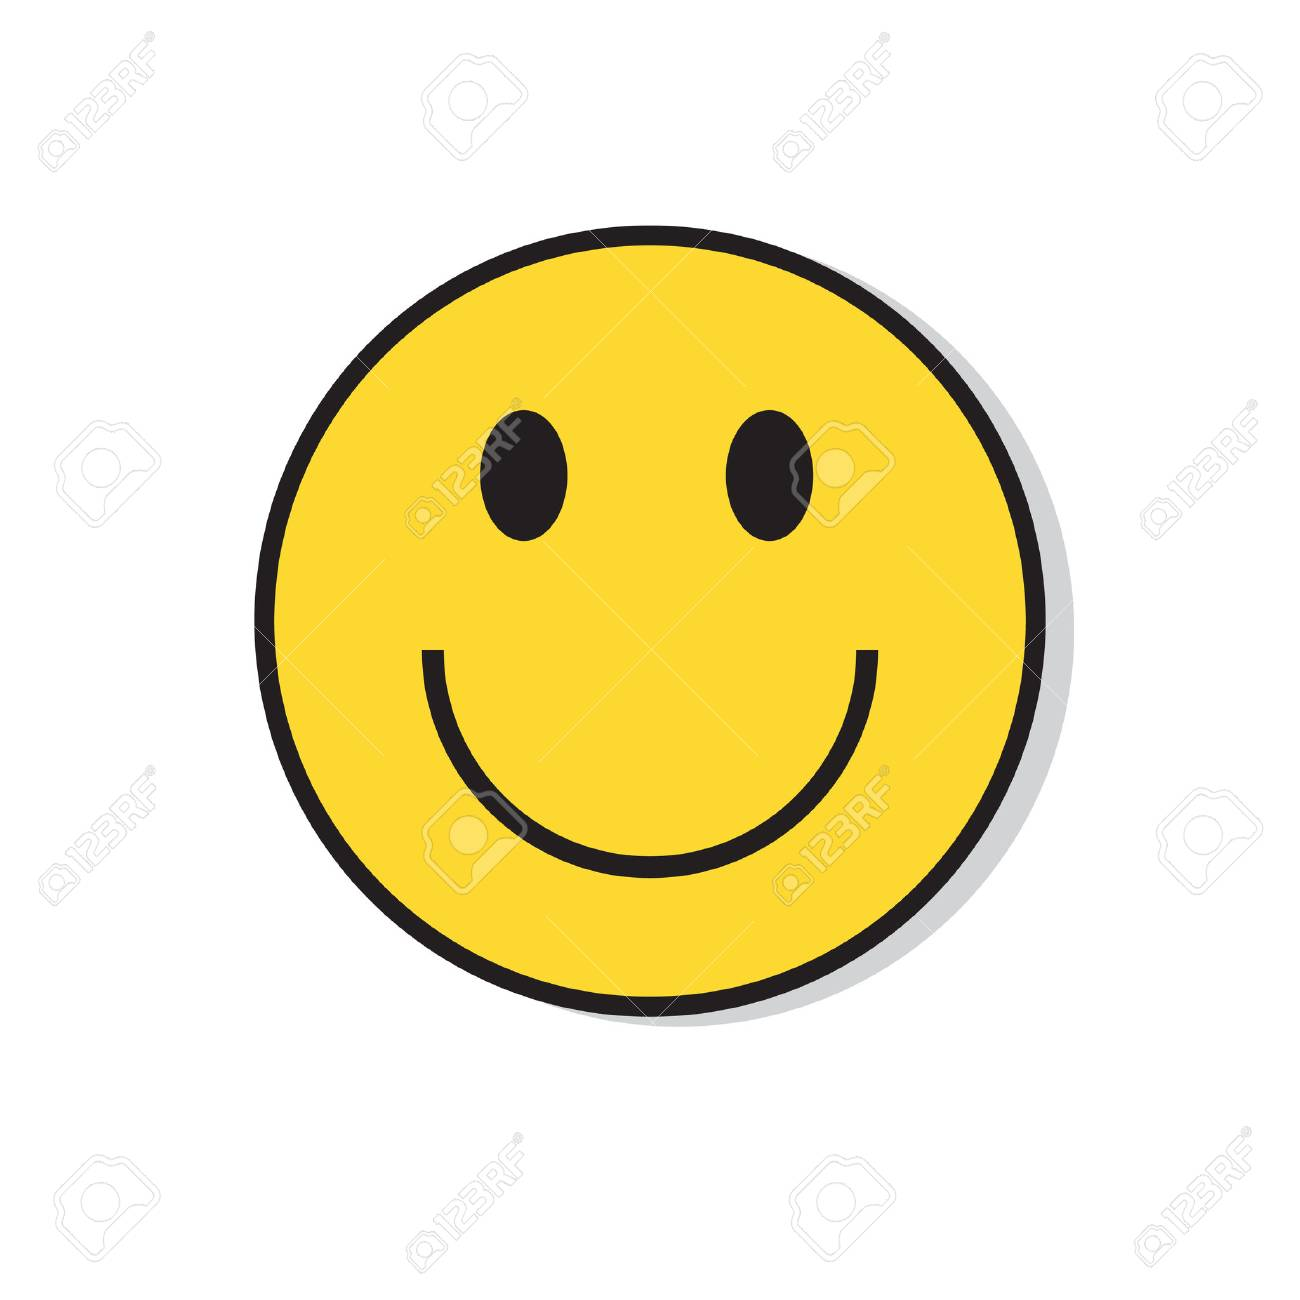 Yellow Smiling Face Positive People Emotion Icon Flat Vector Illustration - 74207120